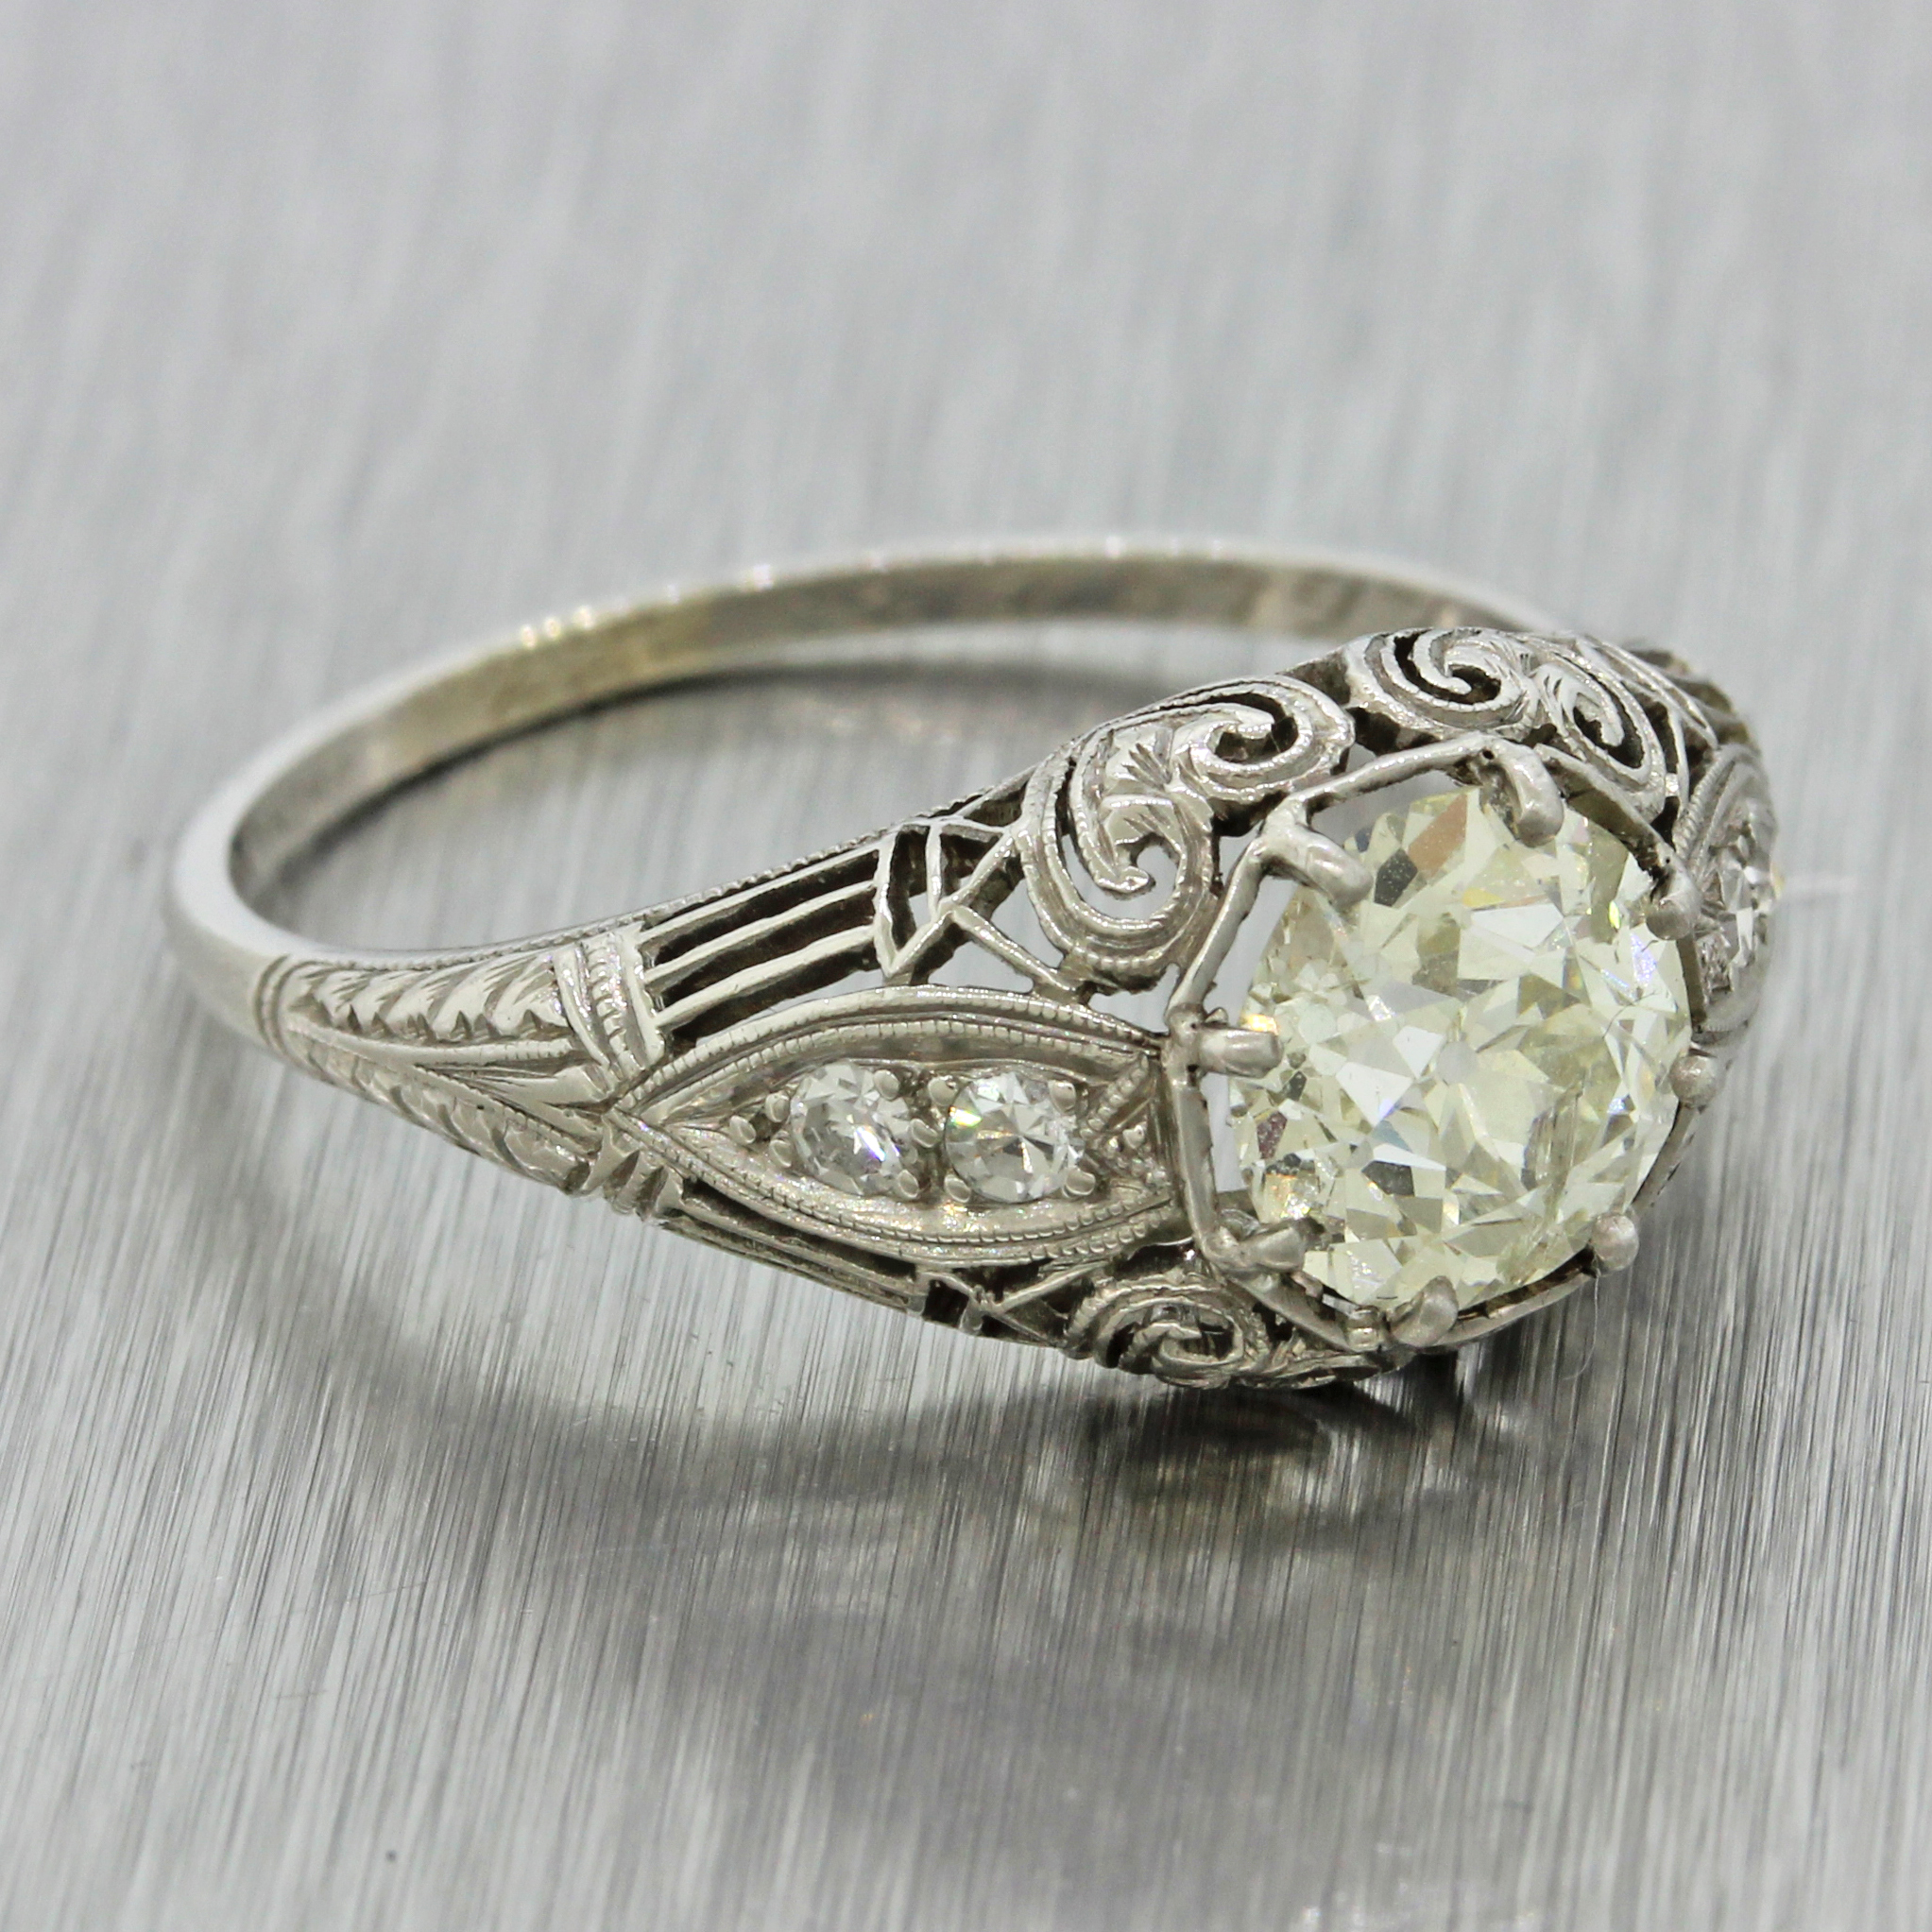 Antique Art Deco Filigree 1920s Platinum 1 37ct Diamond Engagement Ring $9300